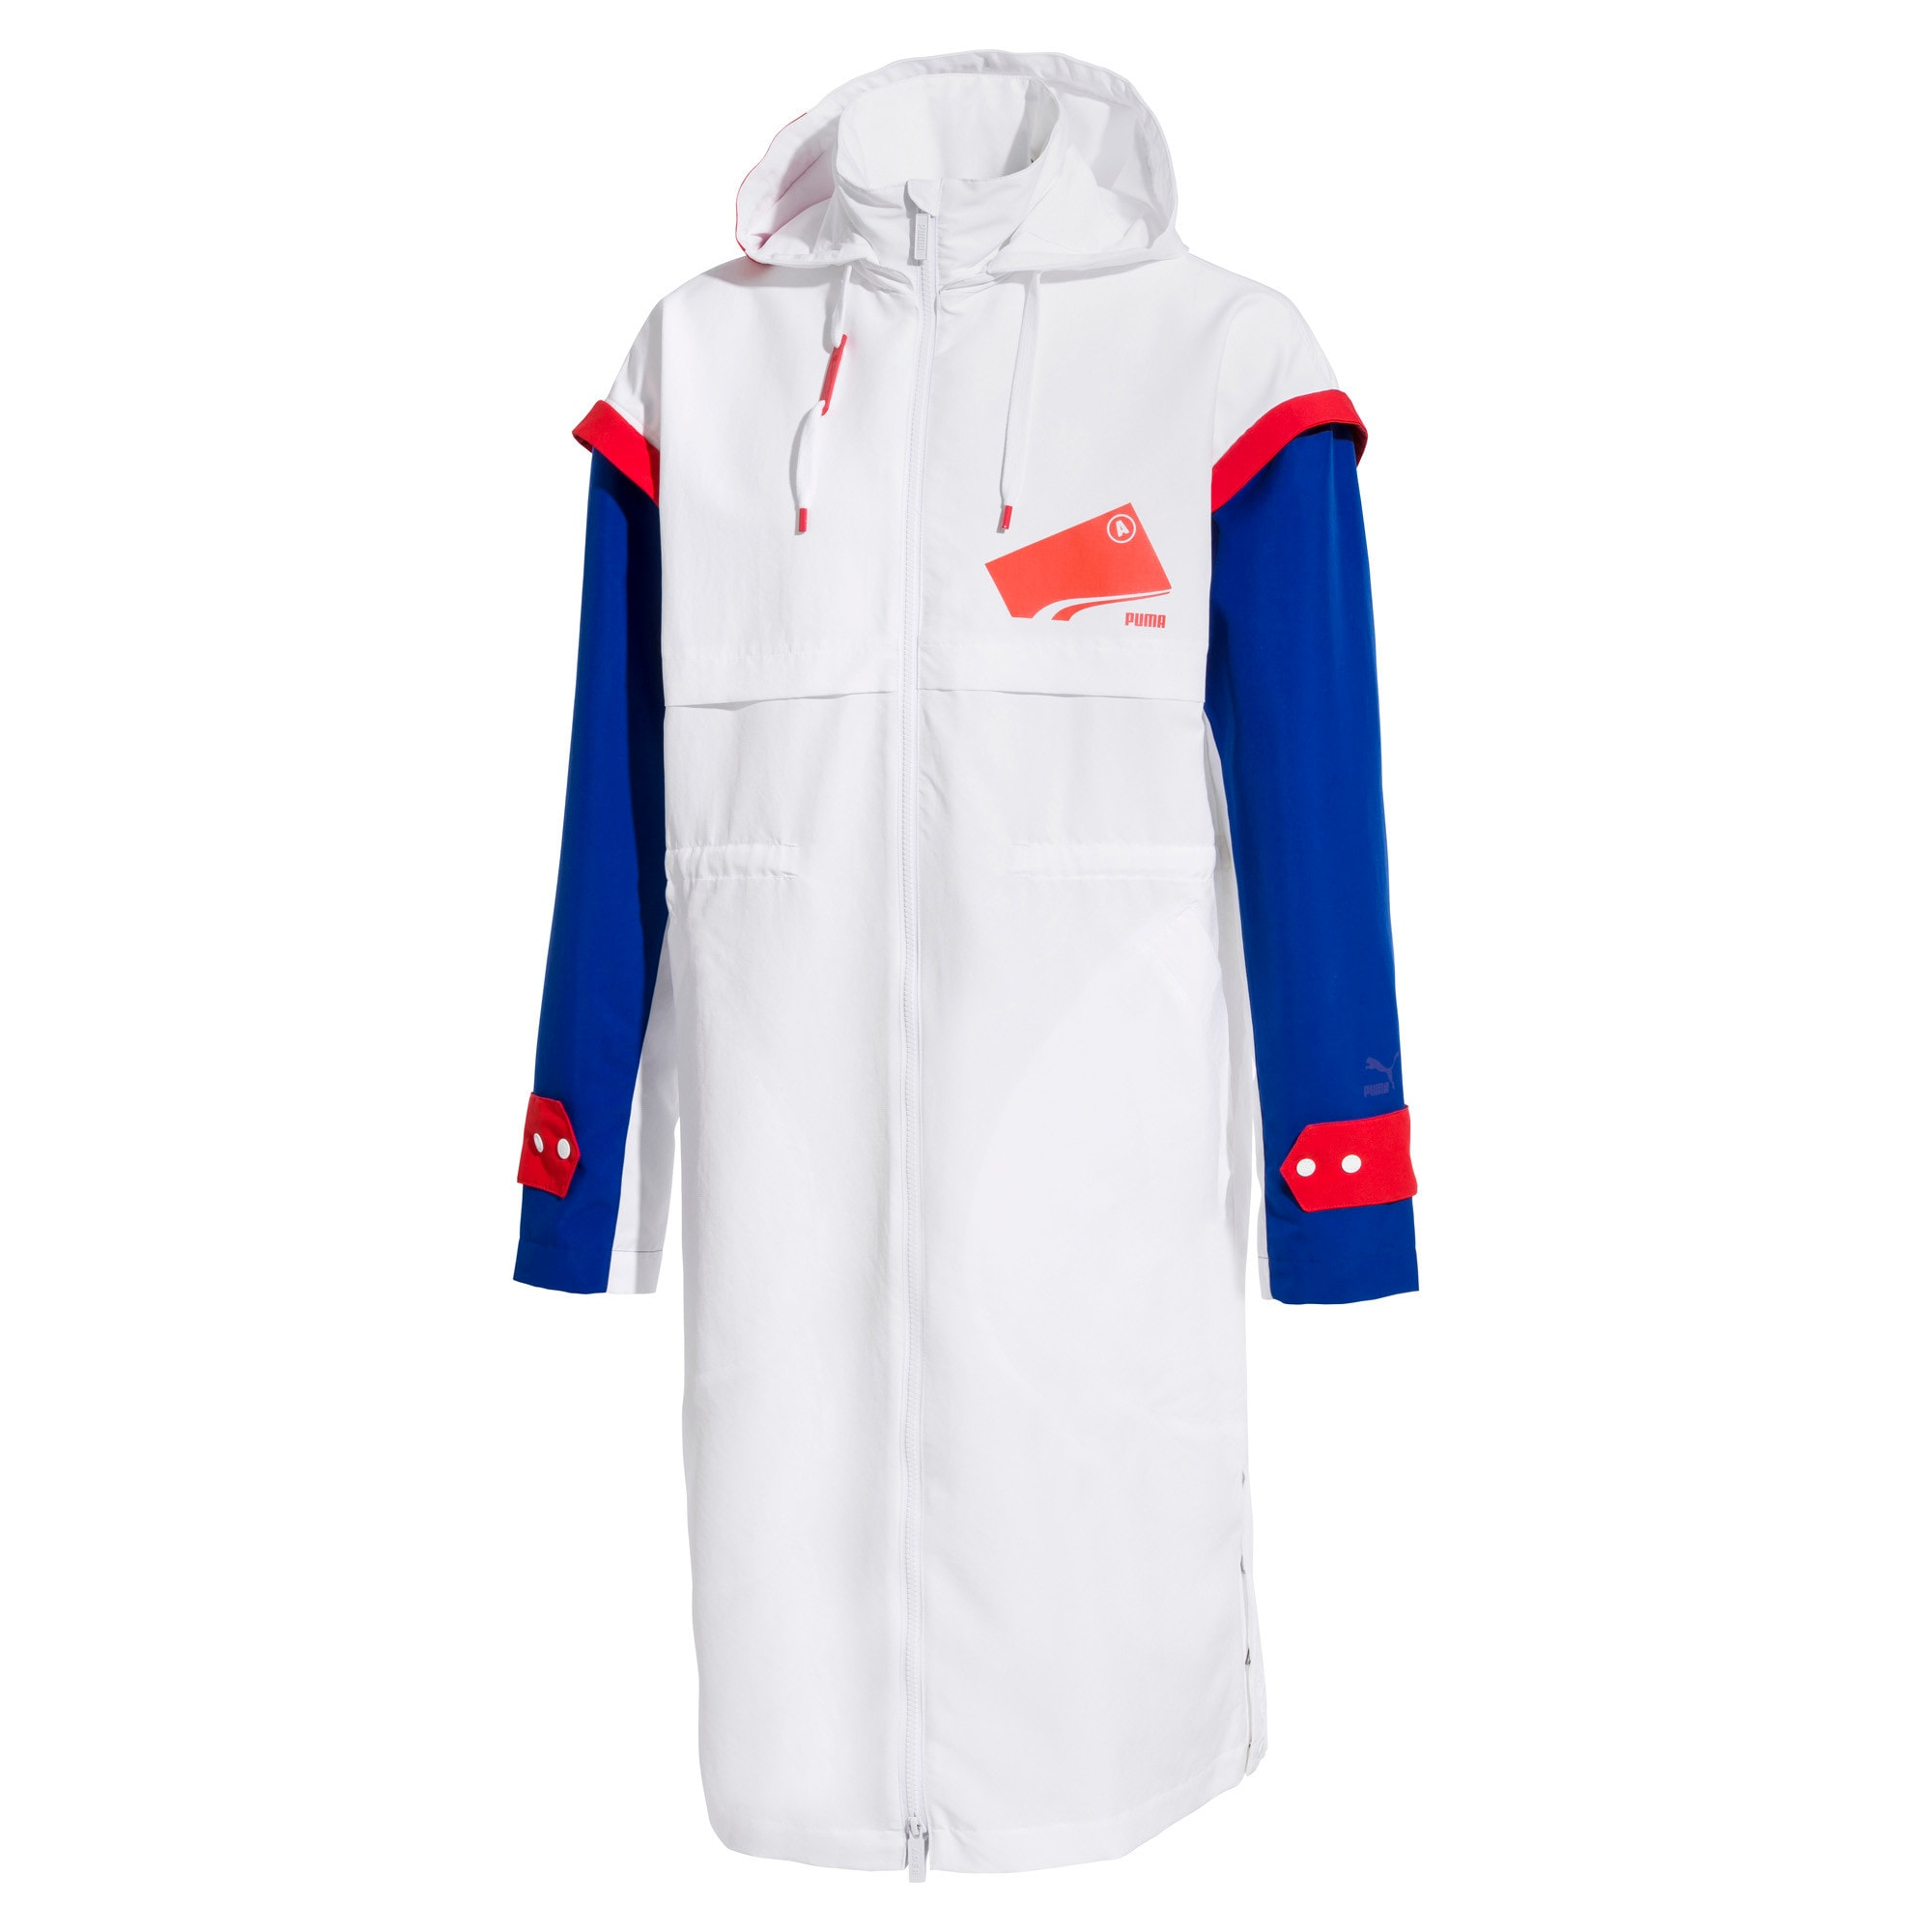 Thumbnail 1 of PUMA x ADER ERROR Parka, Puma White, medium